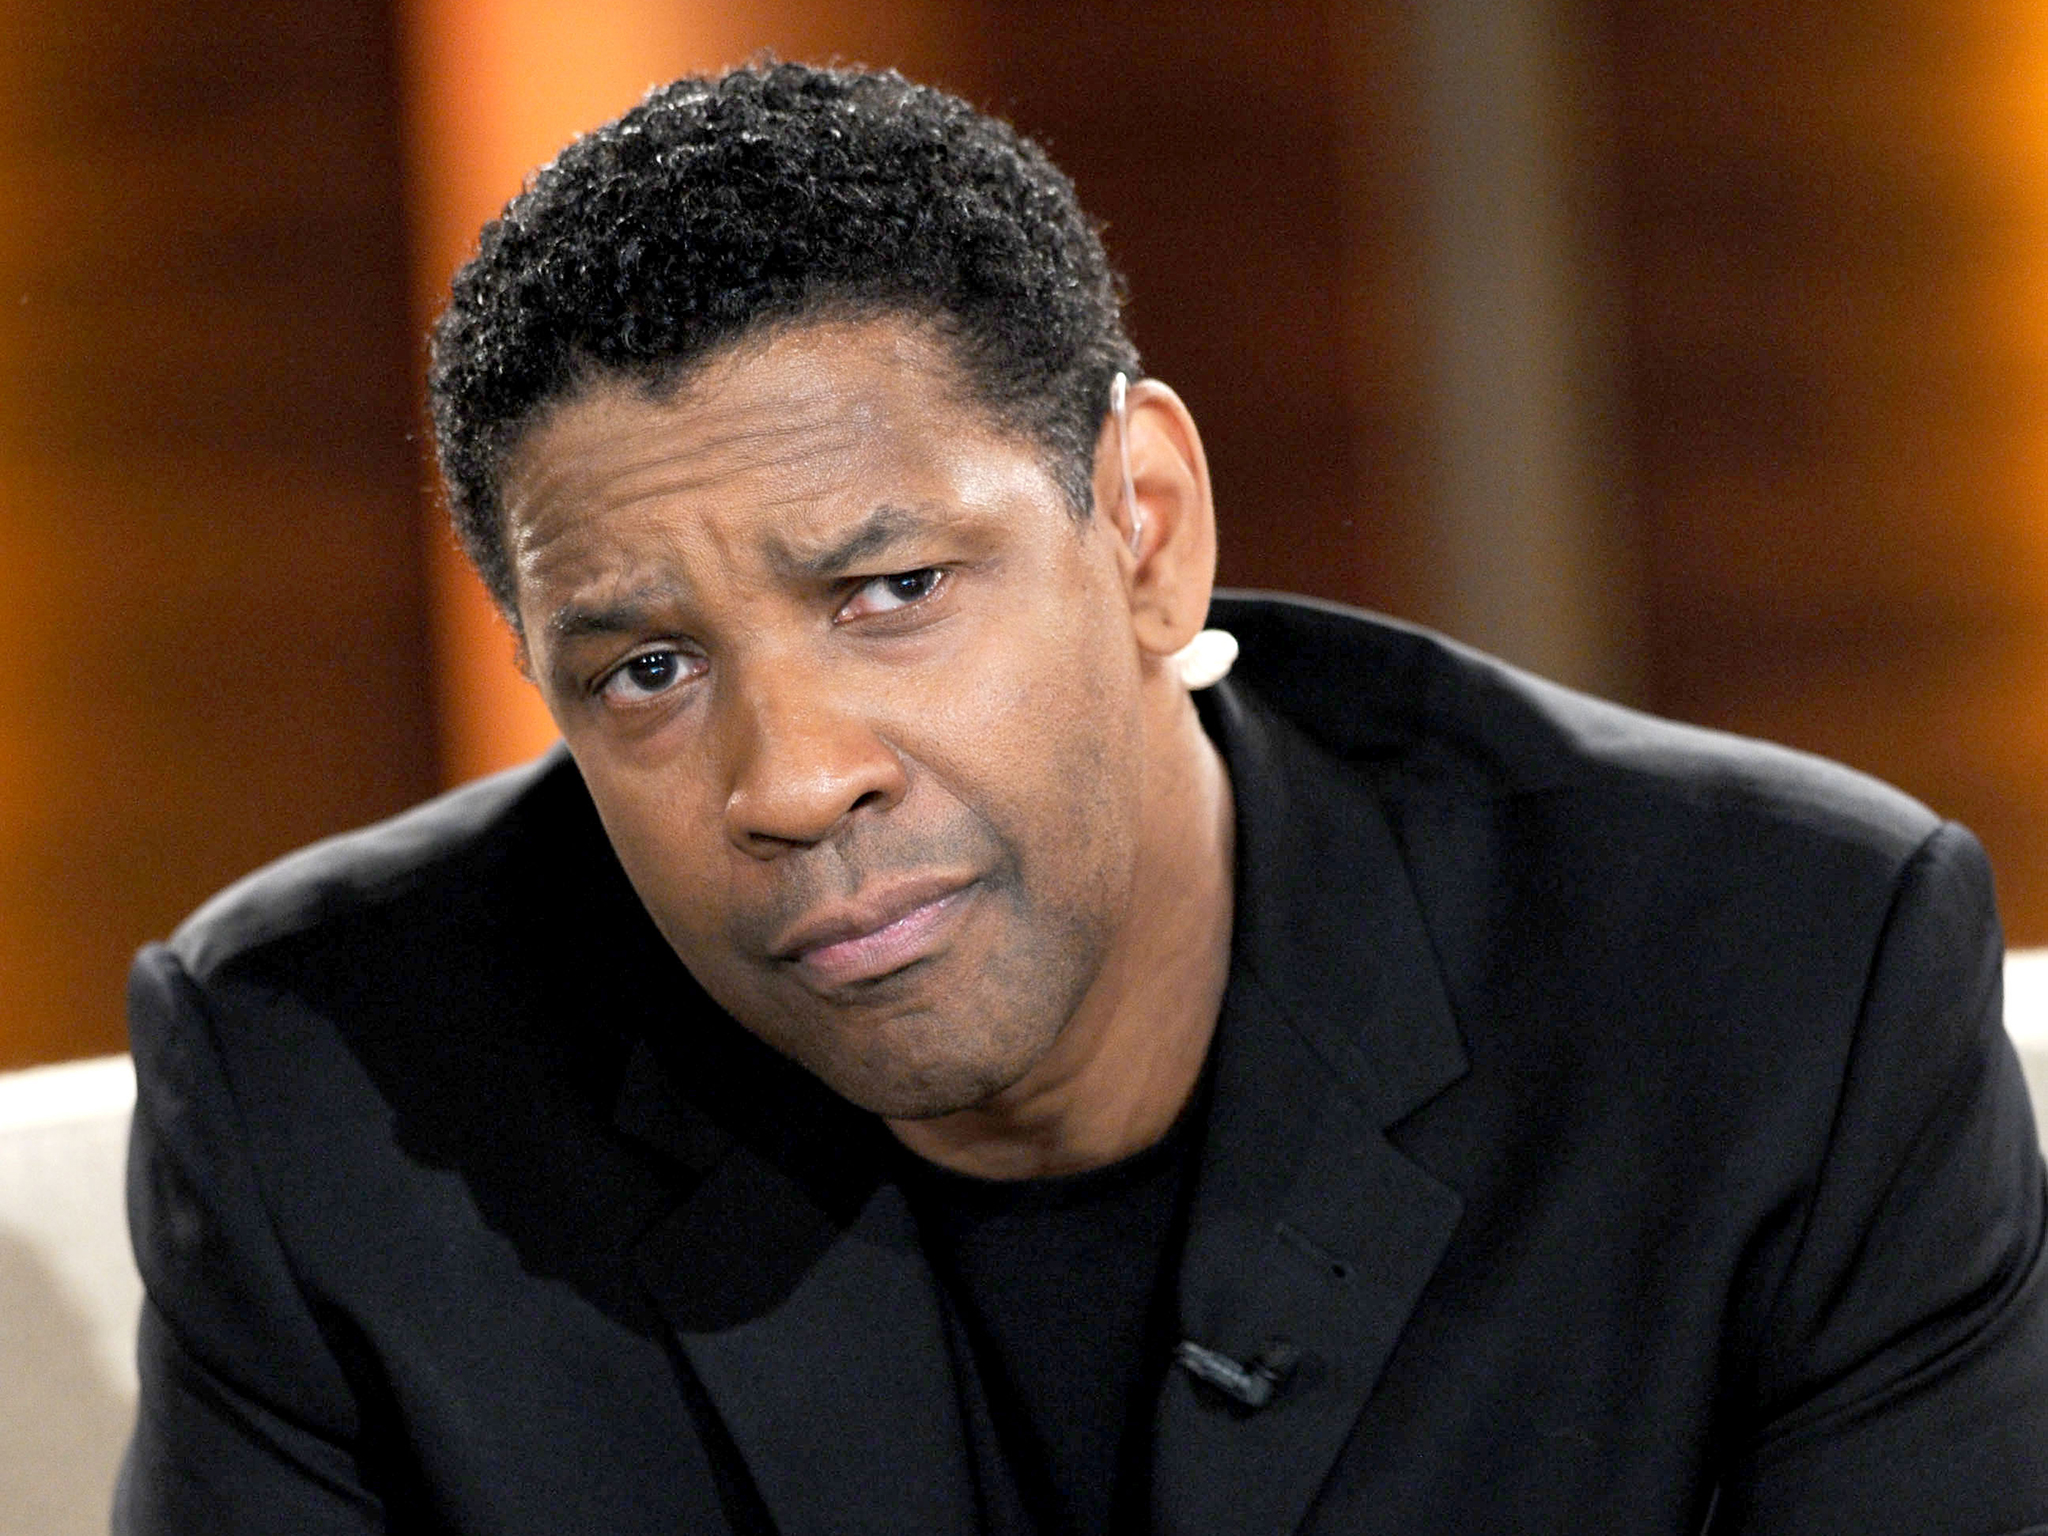 Denzel Washington 2015 Hd Images 3 HD Wallpapers